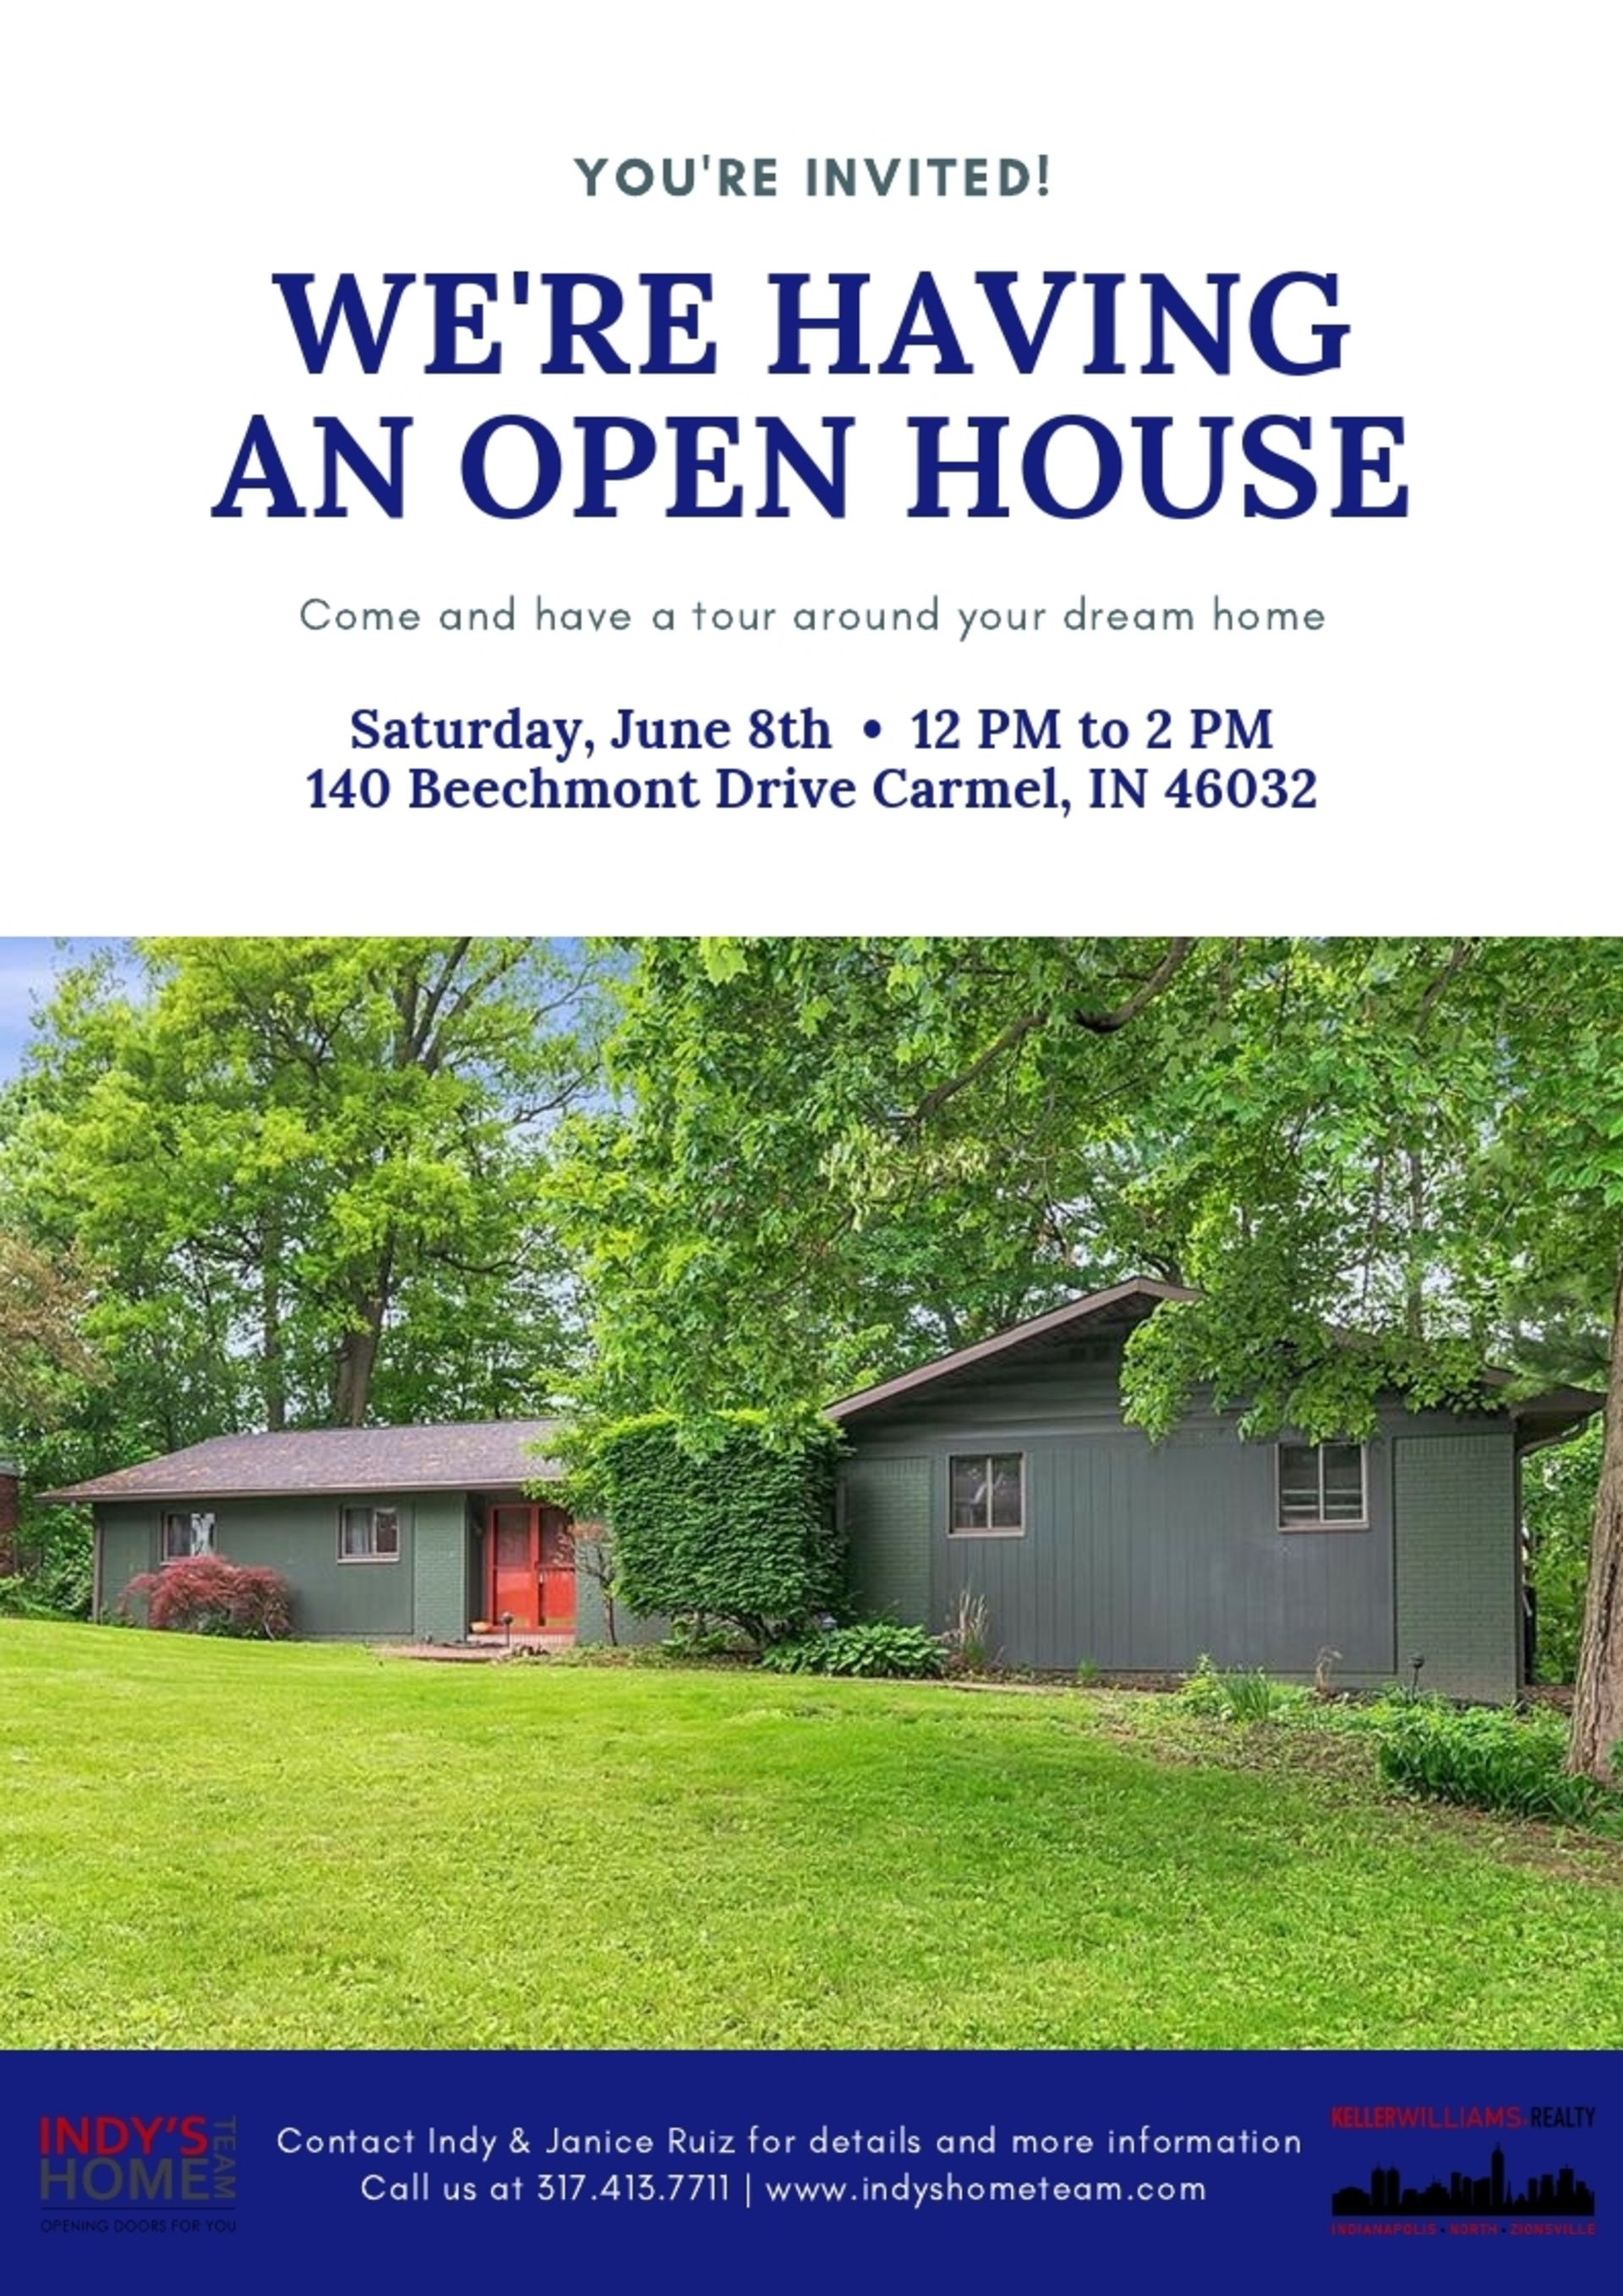 OPEN HOUSE   SATURDAY, June 8th from 12-2 PM! – 140 Beechmont Dr